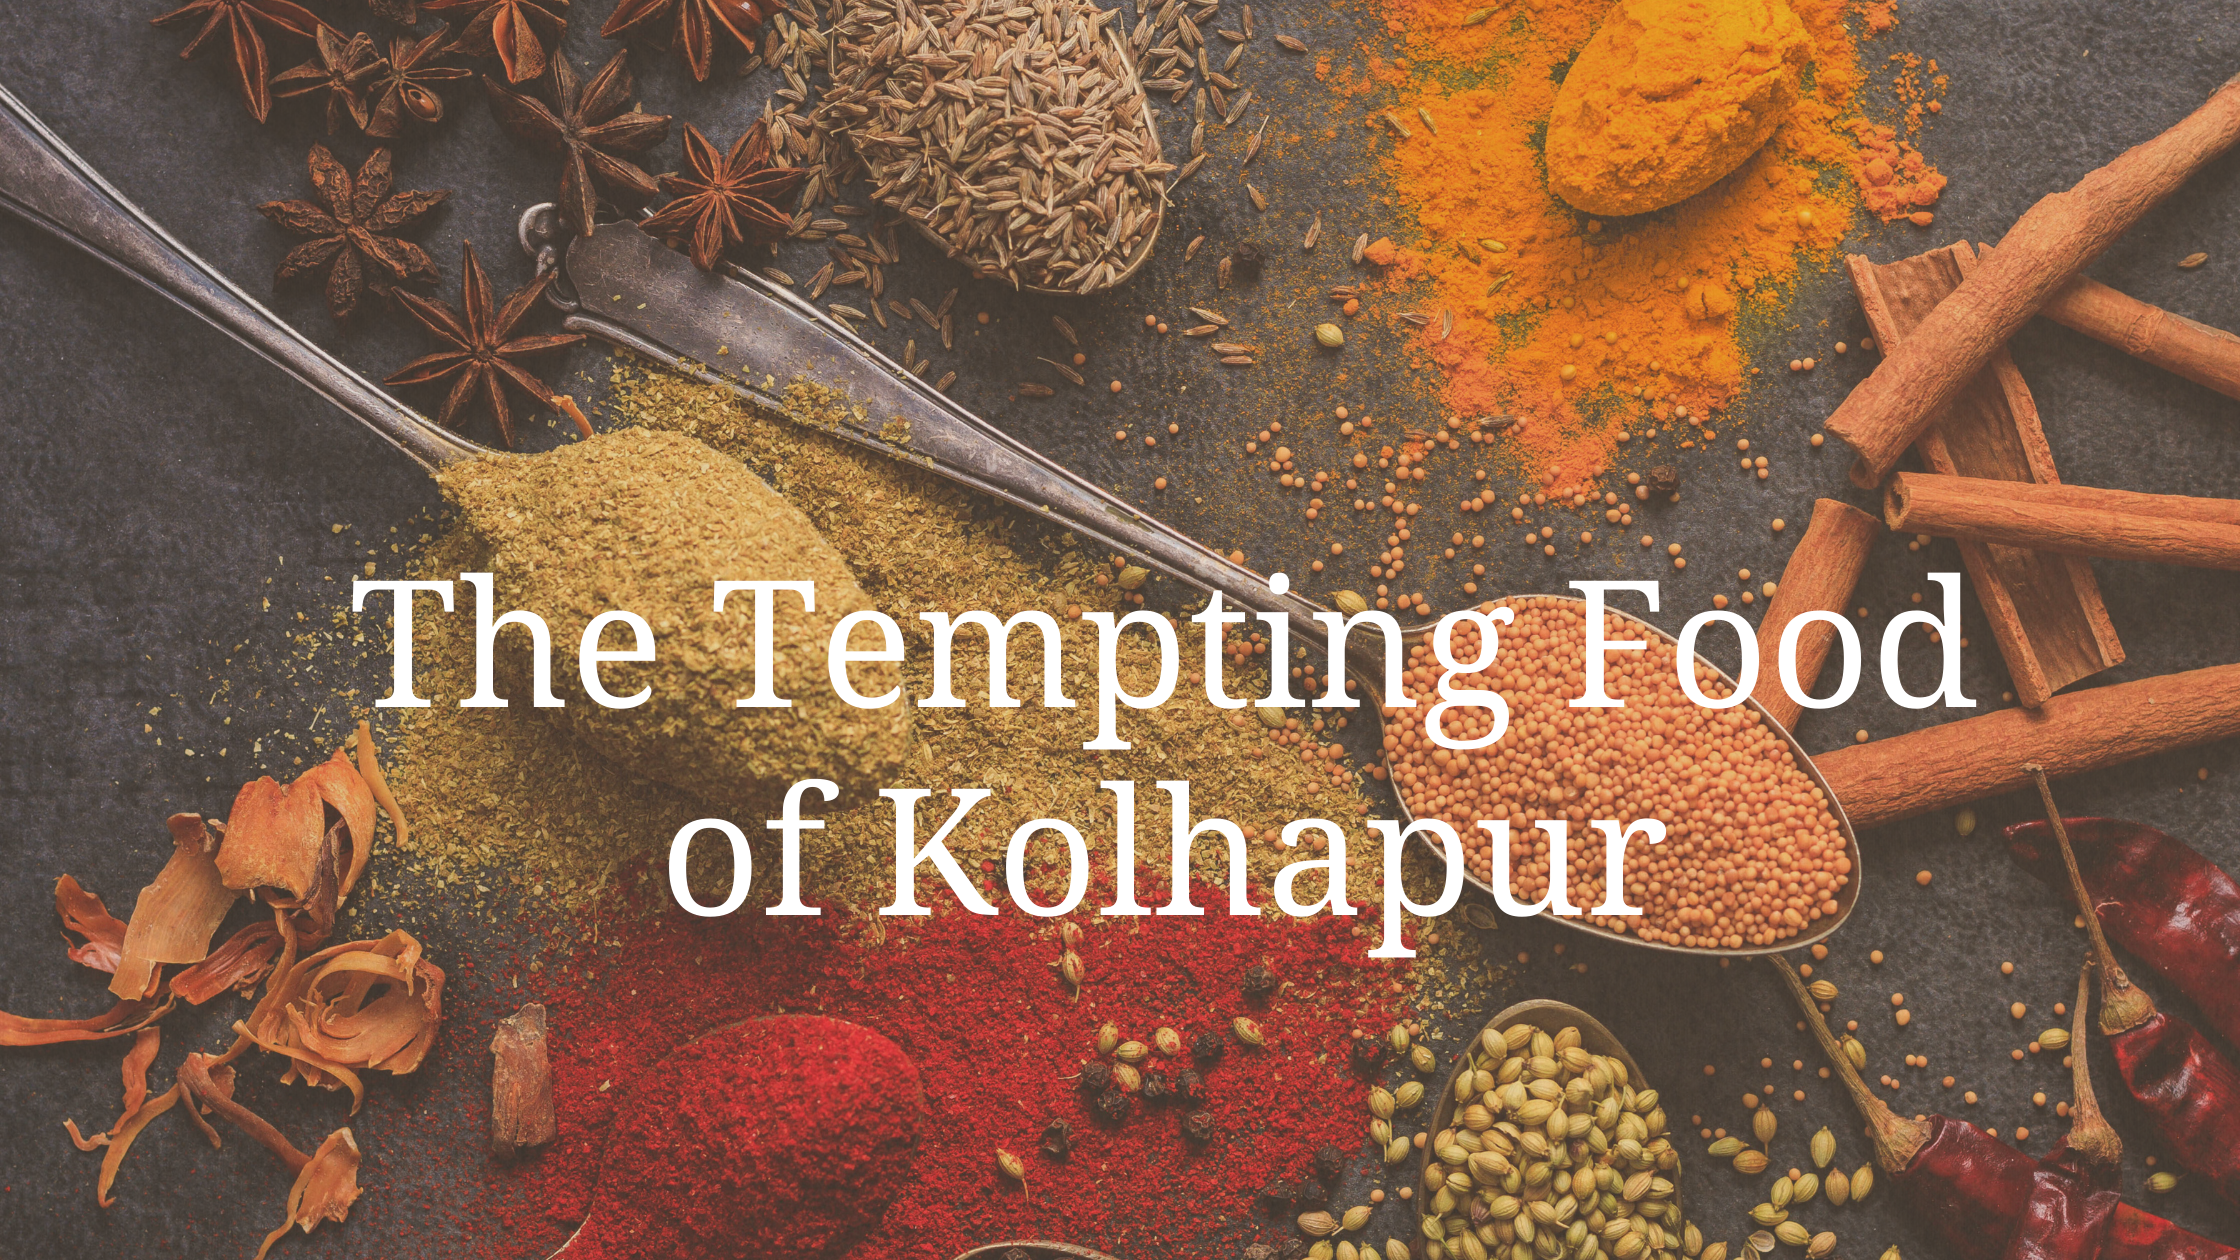 Looking for food in Kolhapur? Here's everything you need to know